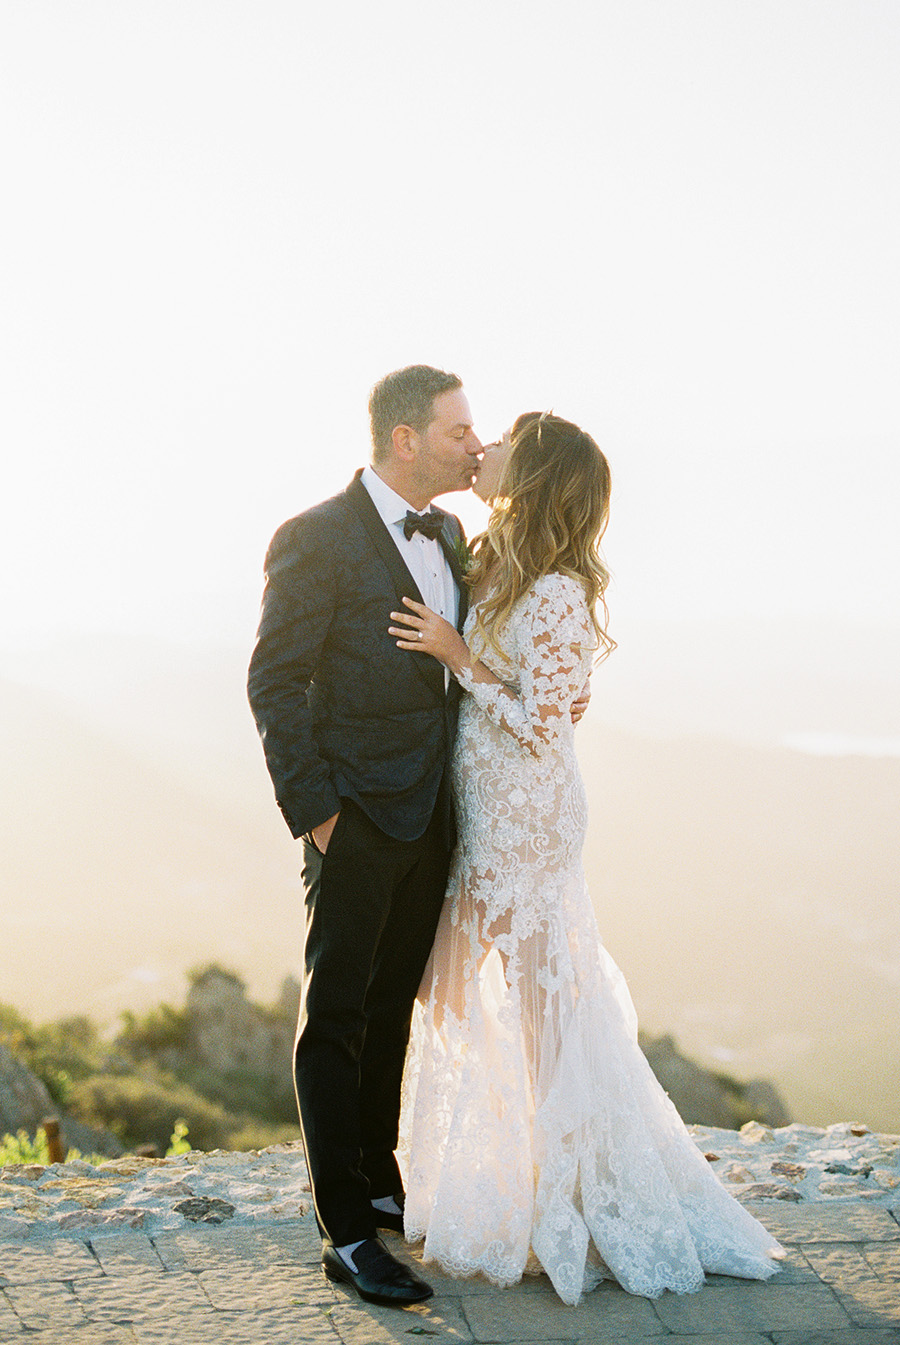 SALLY PINERA_MALIBU ROCKY OAKS WEDDING PHOTOGRAPHY_MALIBU_MARISSA AND PAUL-287.jpg